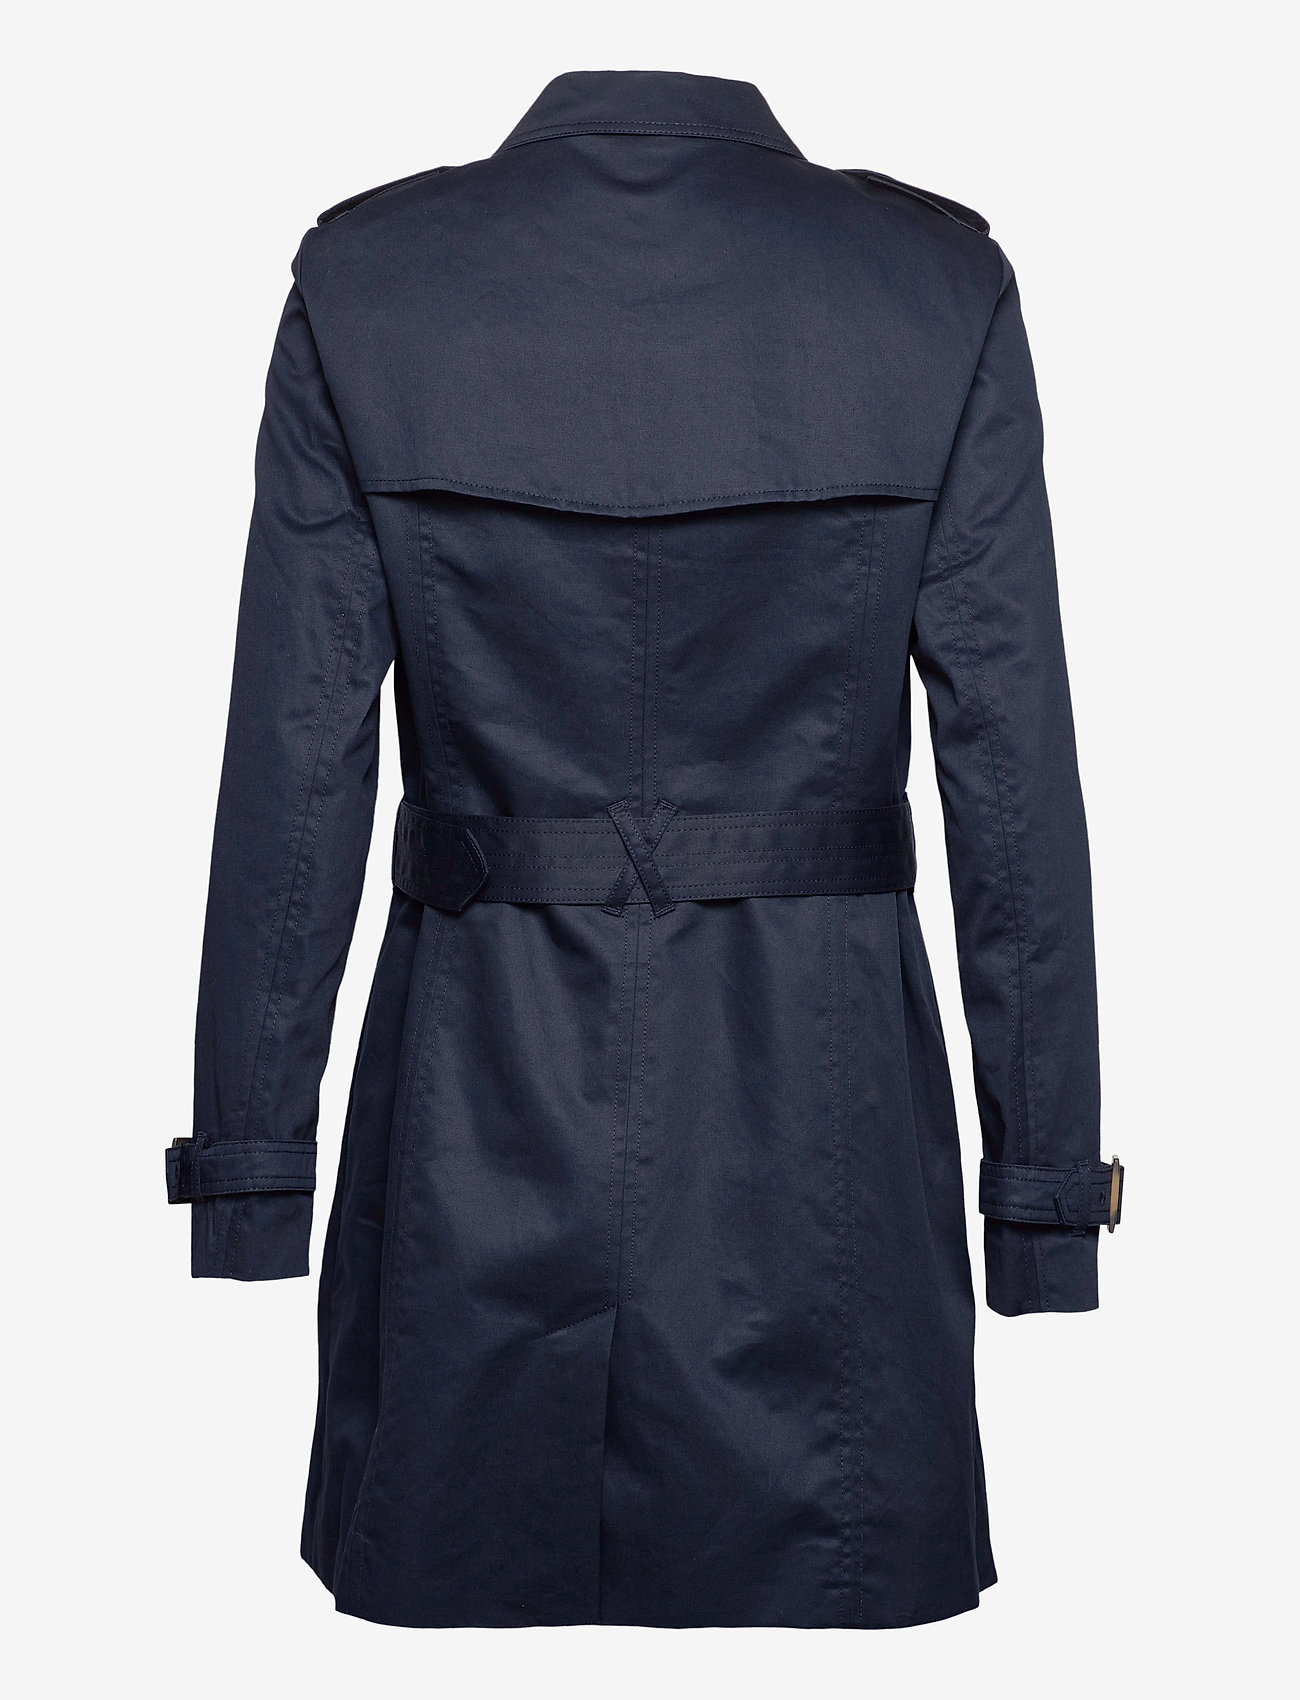 Esprit Casual - Coats woven - trenchs - navy - 1